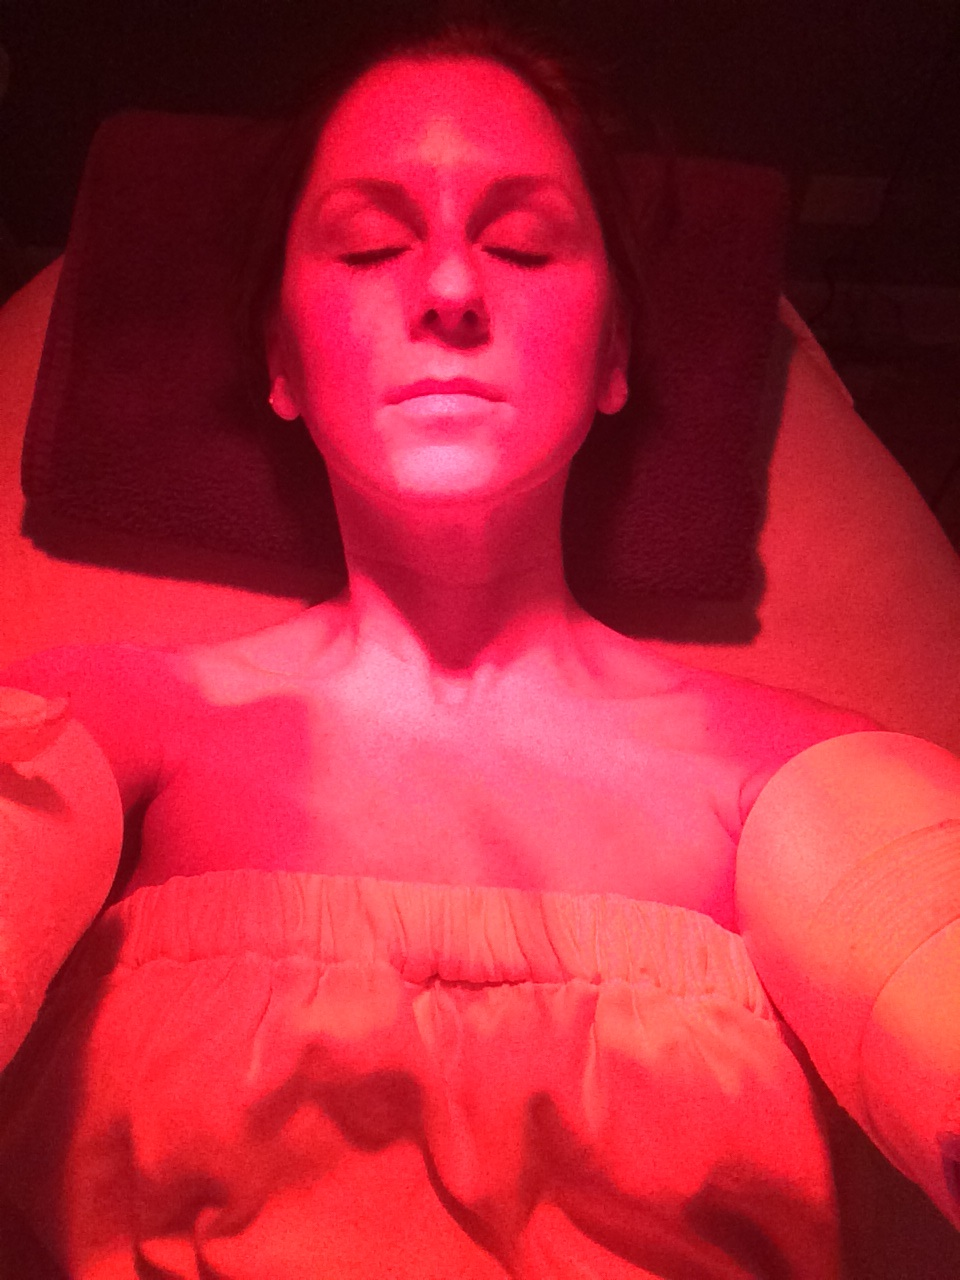 Thermojet Infrared Body Wrap    Something else I have recently tried is the Thermojet Infrared Body Wrap treatment is designed to initiate the process of lipolysis (breakdown of stored fat) in the body. This unique system uses bimodal (short and long wave) infrared technology to break down free fatty acids and release them into the blood stream for metabolism. Reduce the appearance of cellulite and lose inches in 6-9 treatments.   It was a very relaxing experience and I felt lighter afterwards. This service is PERFECT before a big event like a wedding, gala, or anything else you want to look a little slimmer for.